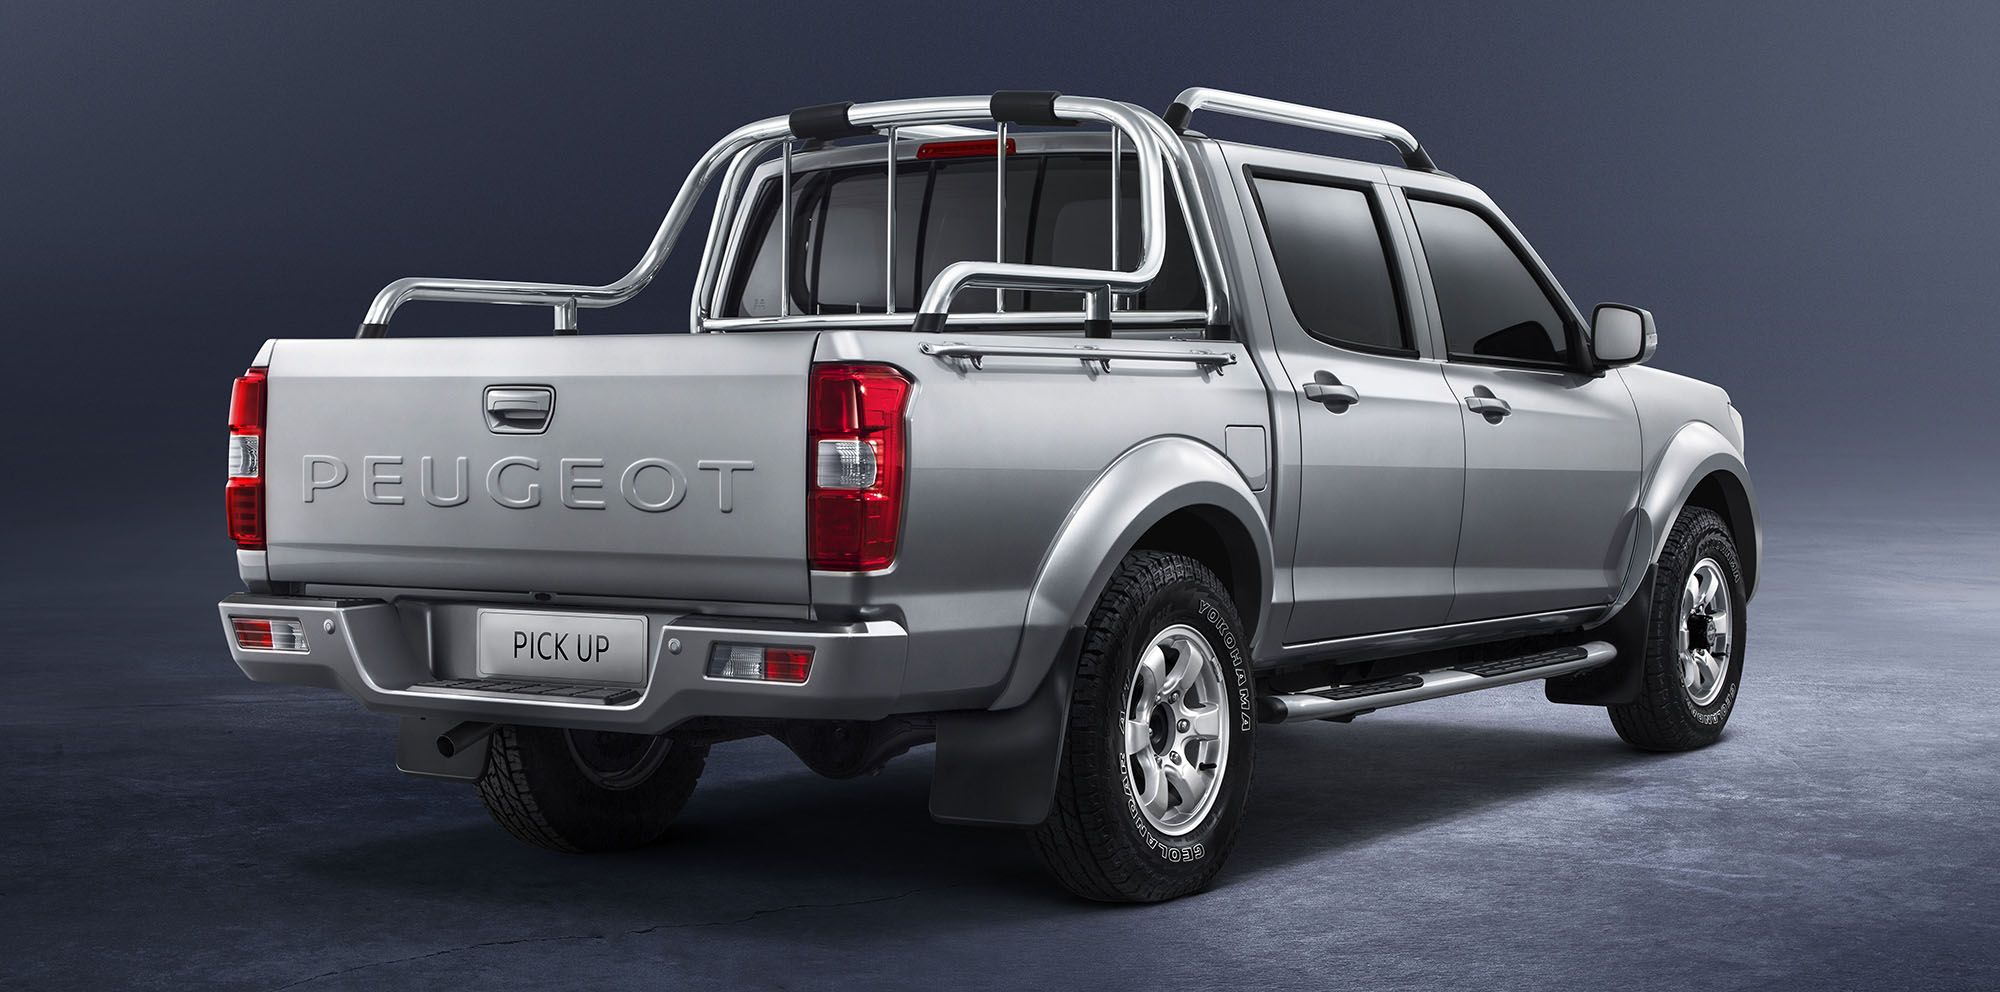 peugeot pick up rebadged chinese ute to go on sale in africa photos. Black Bedroom Furniture Sets. Home Design Ideas